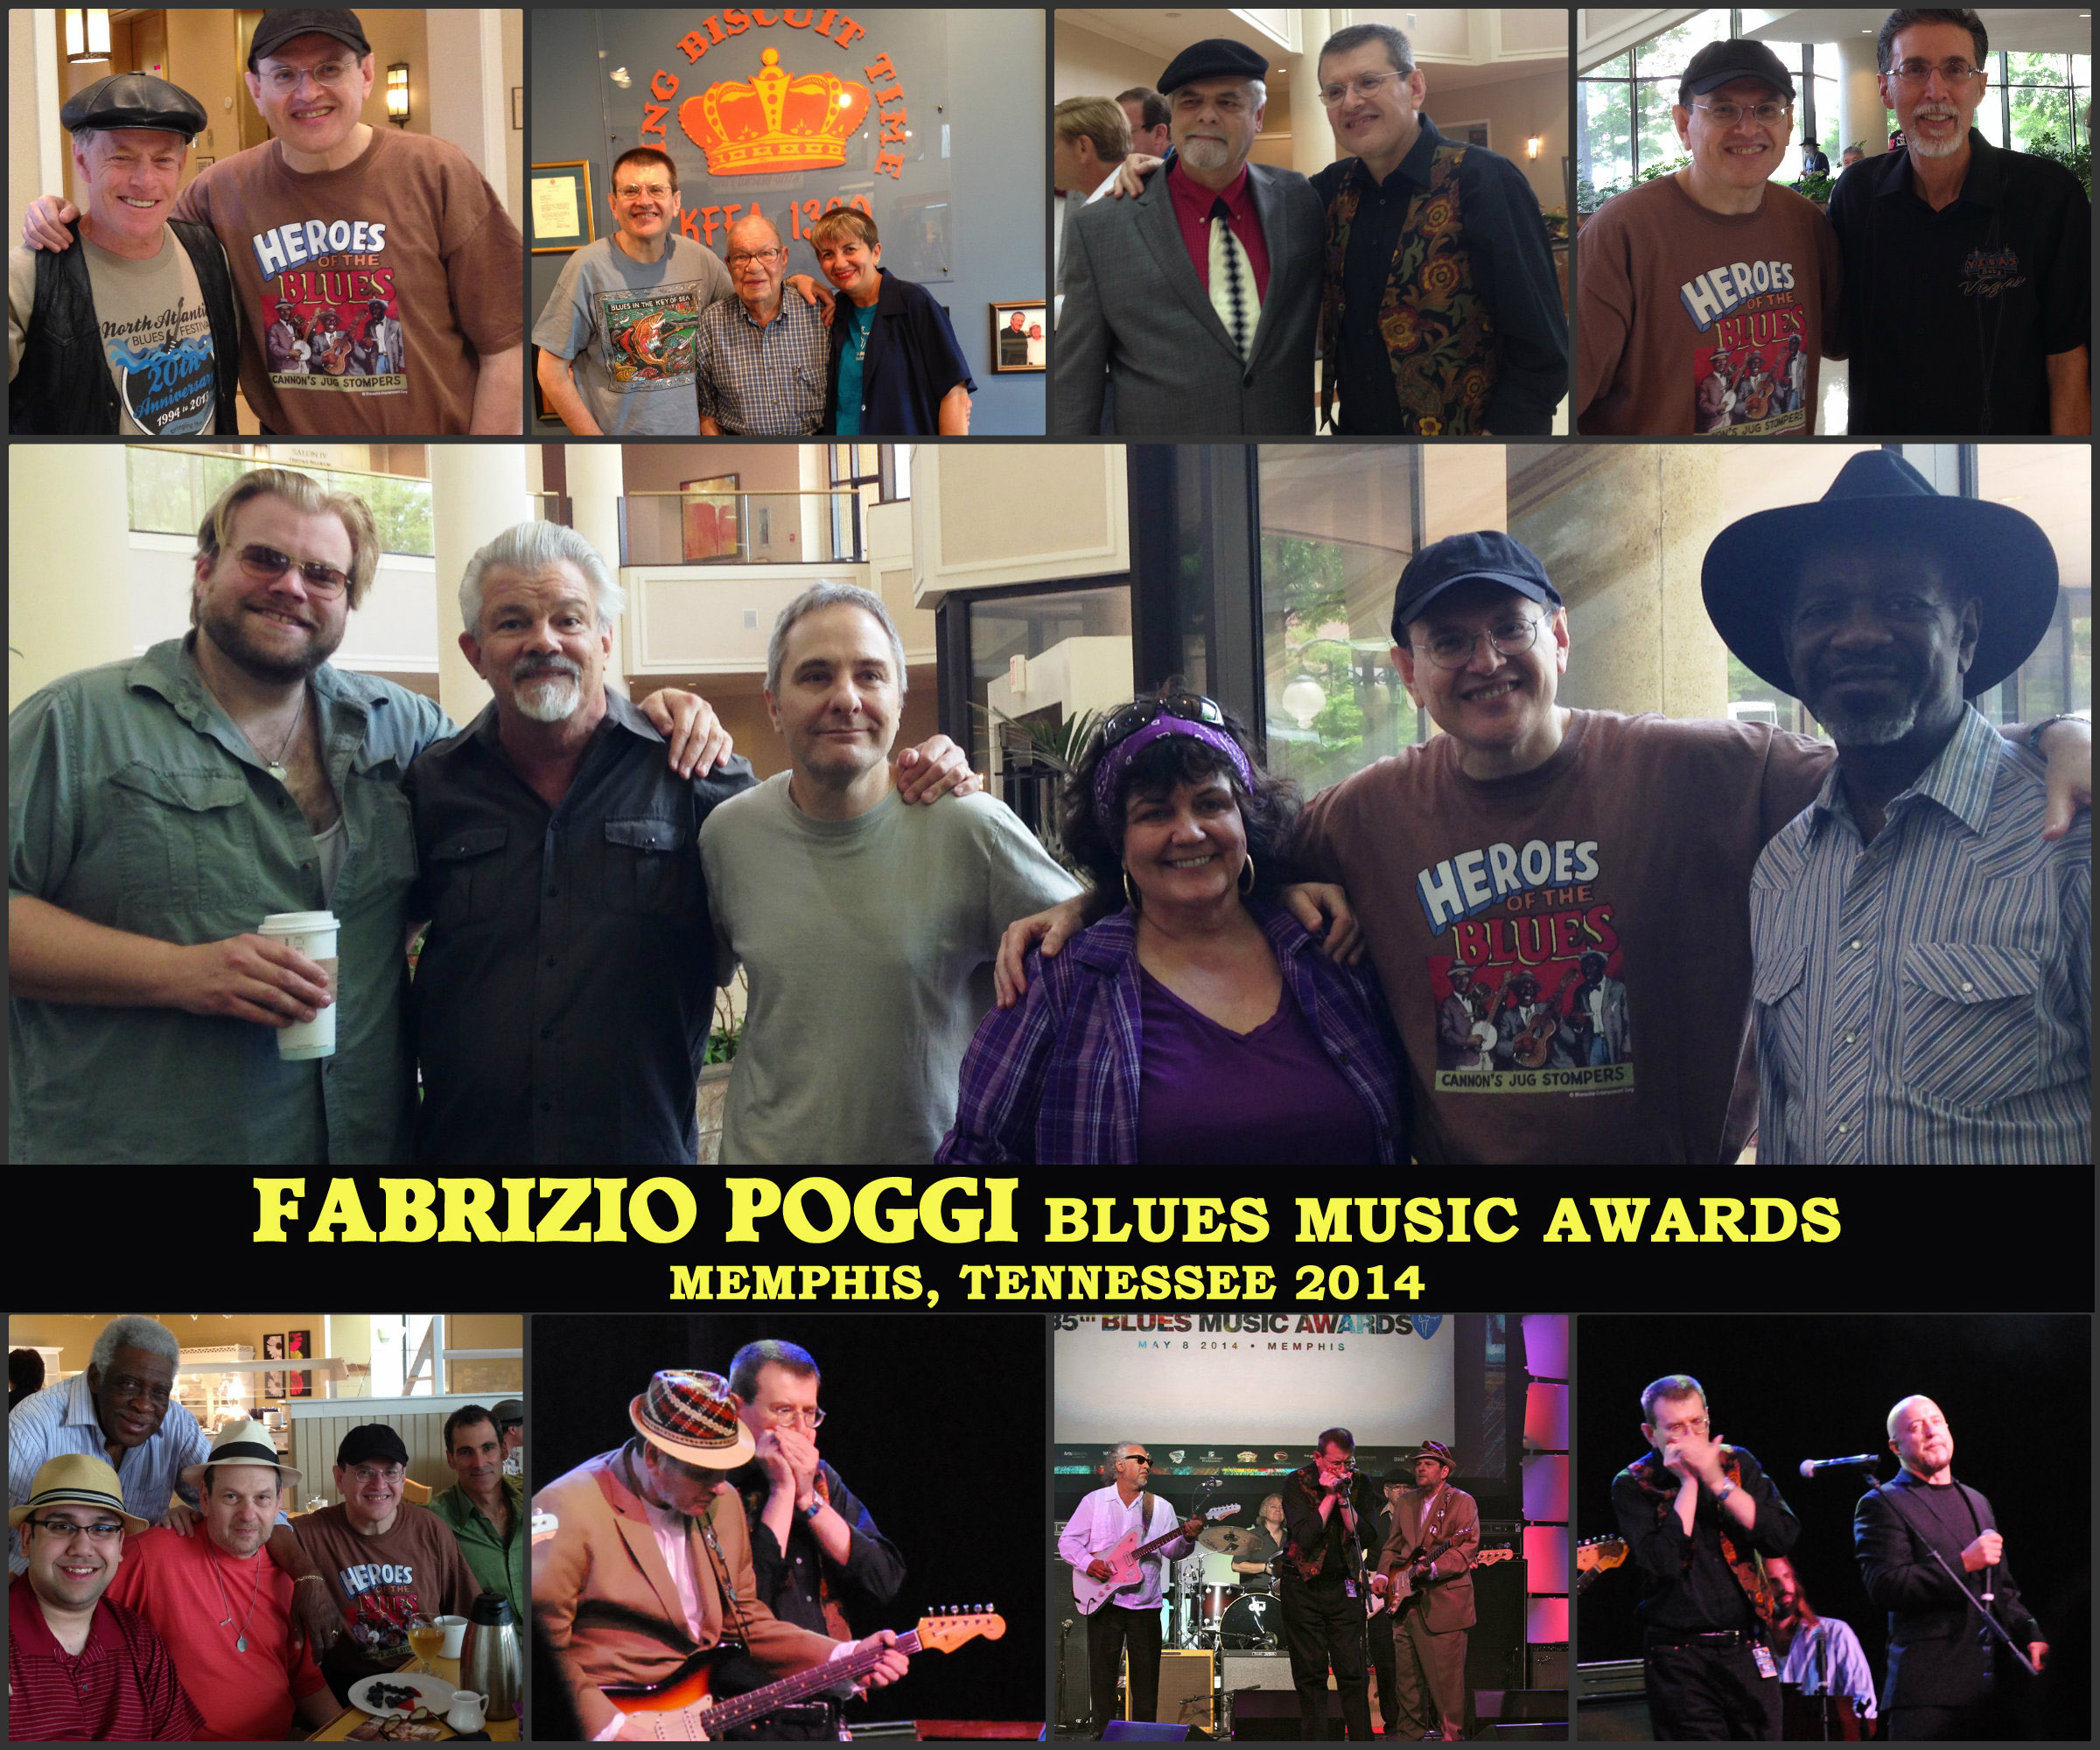 FABRIZIO POGGI BLUES MUSIC AWARDS 2014